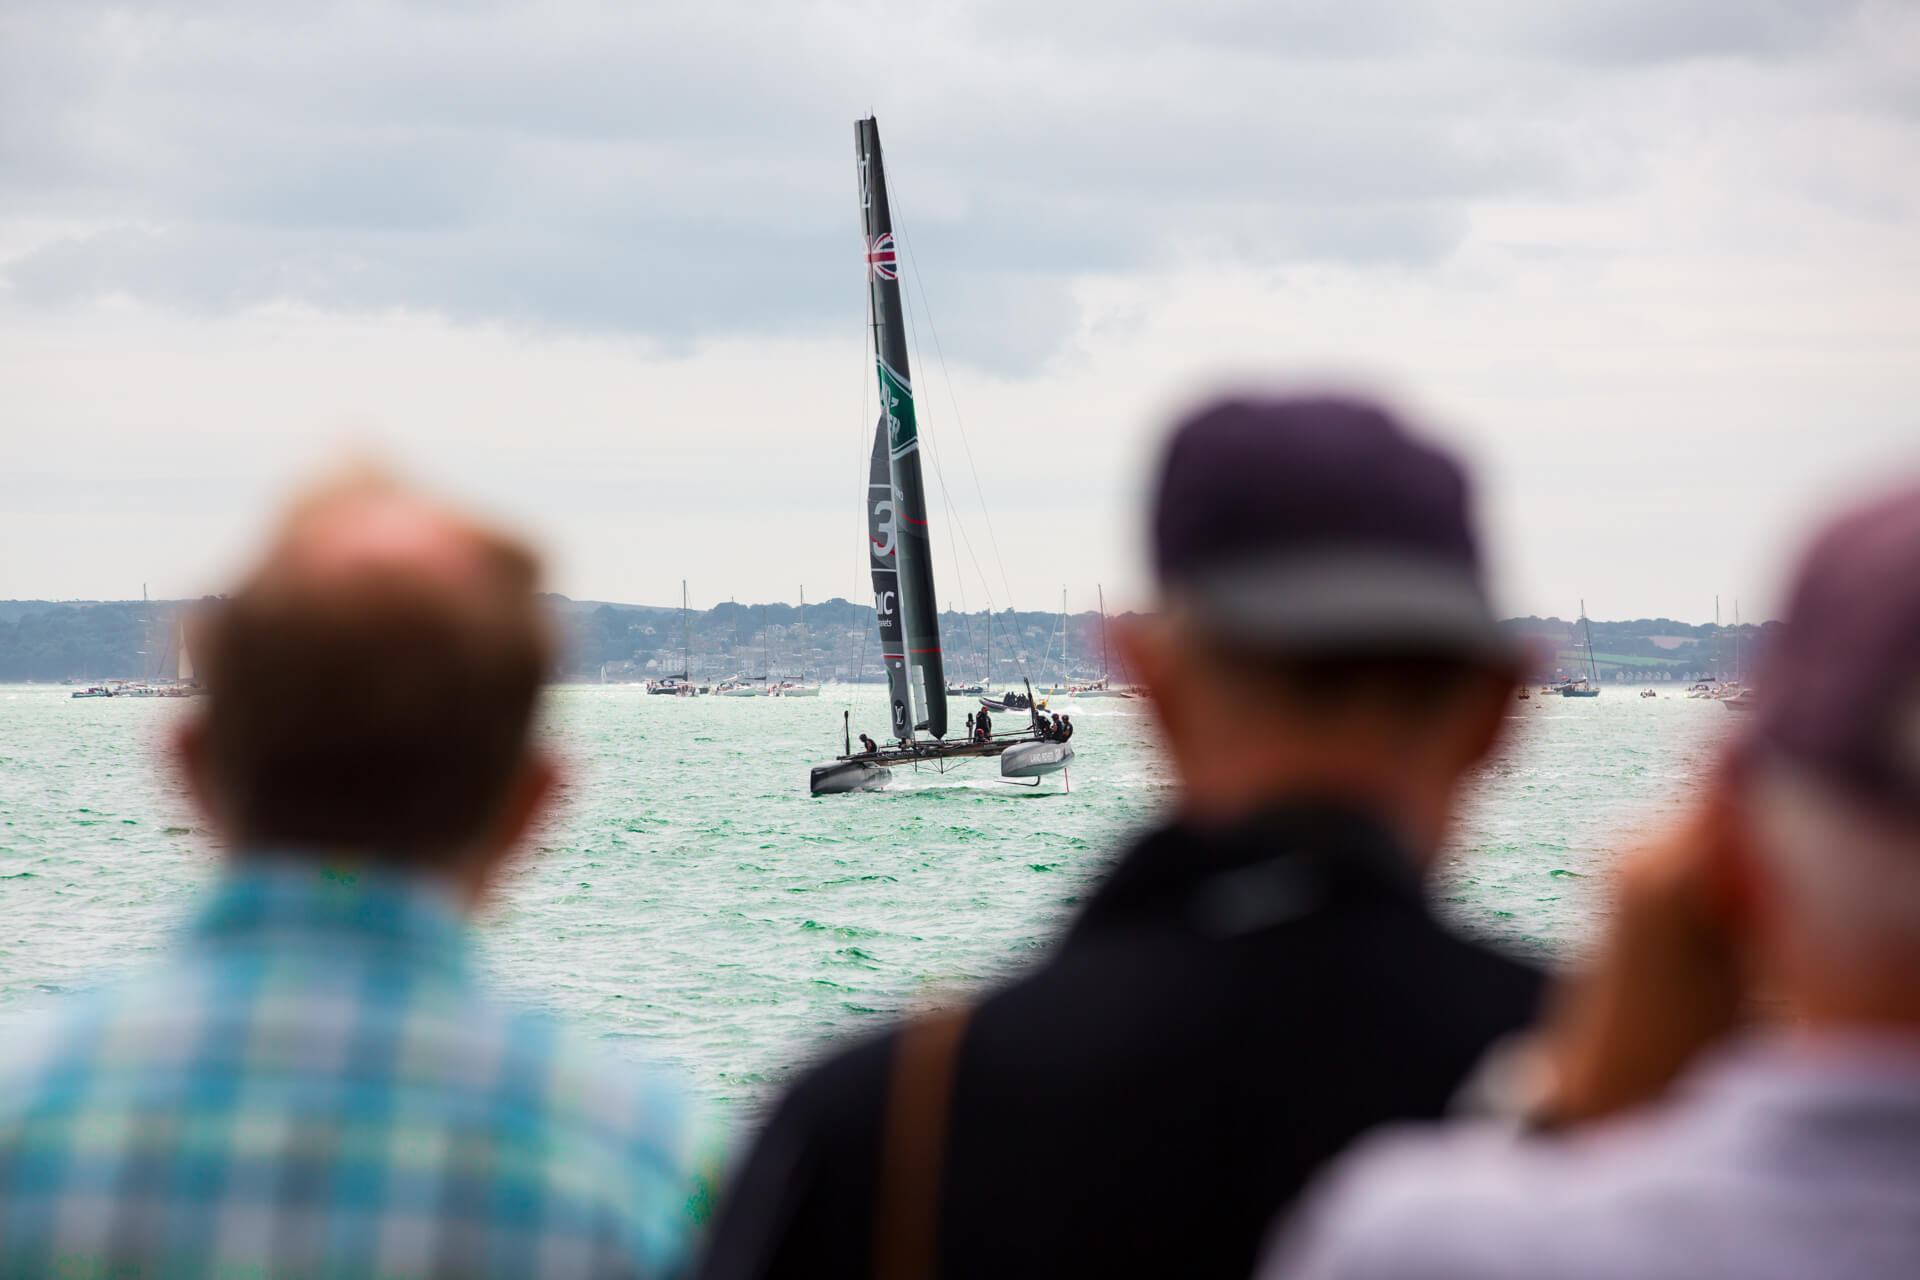 America's Cup, America Cup, World Series, Sailing, Sea, Land Rover, Louis Vuitton, Oracle, Race, Boat, Yacht, Summer, Photography, Film, Agency, Marketing, WeAreShuffle, Production, Waves, Portsmouth, Crowd